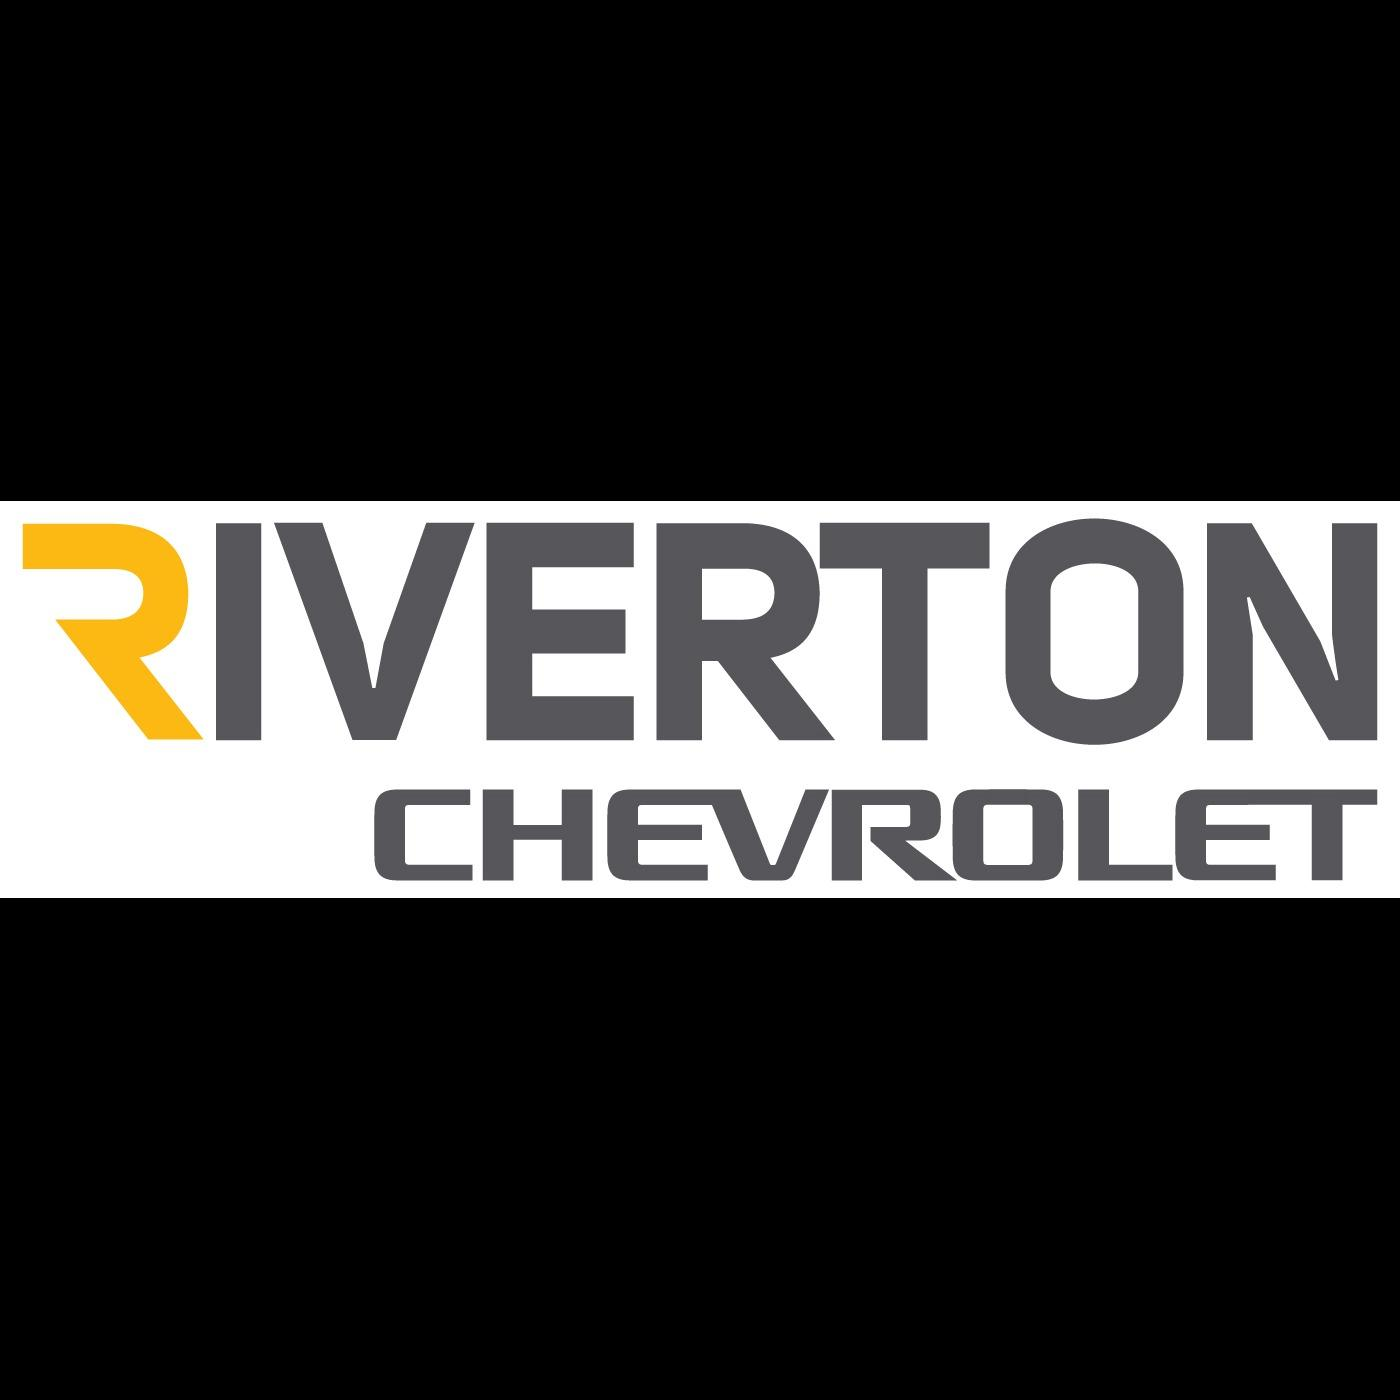 Riverton Chevrolet